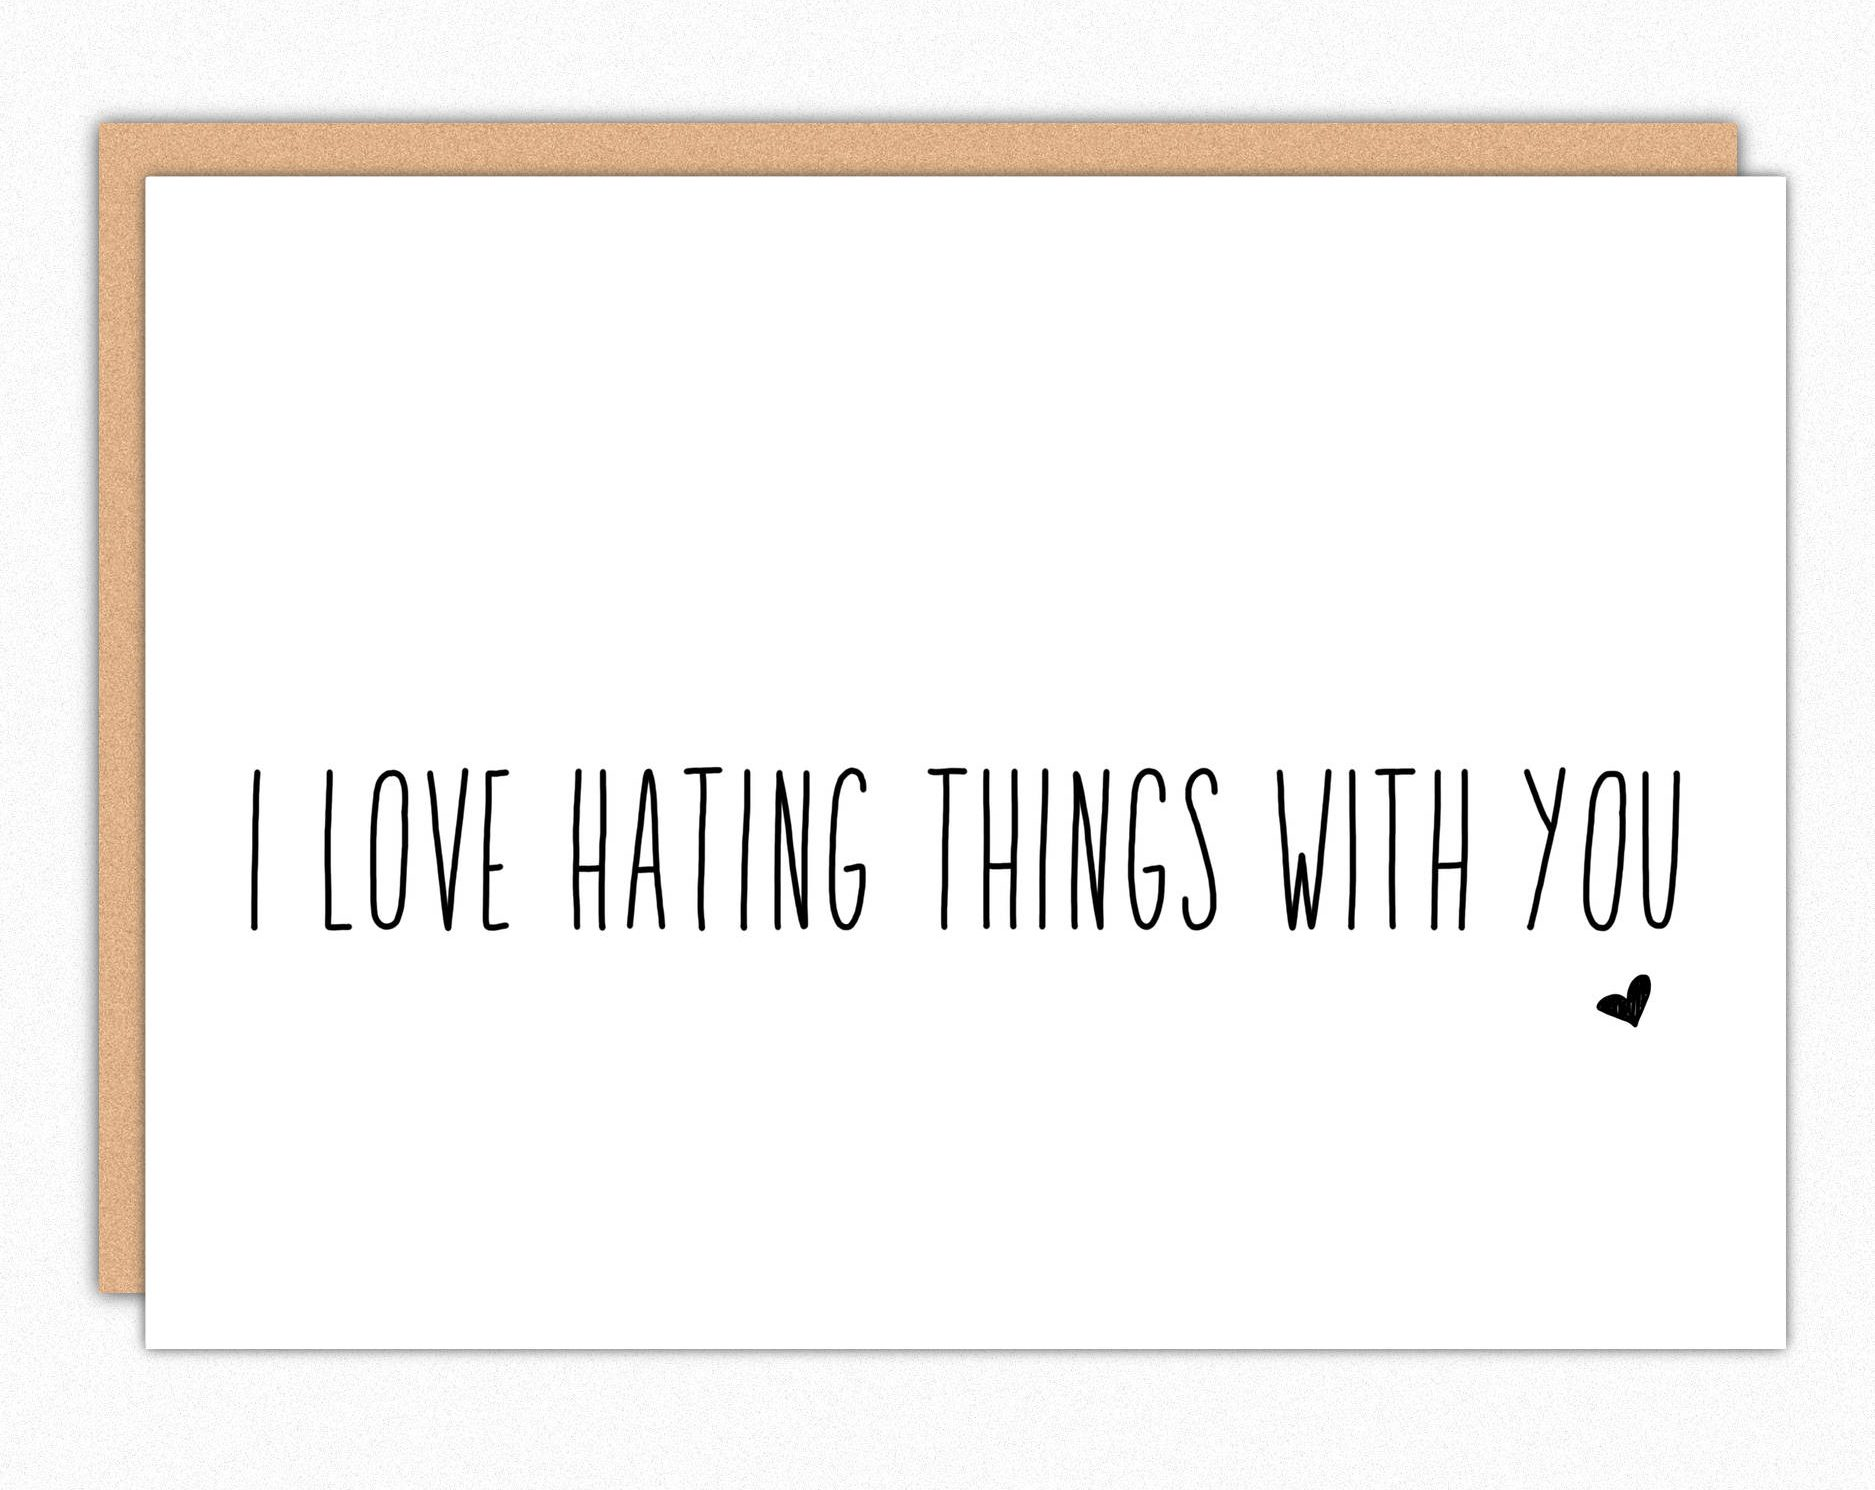 Funny Valentine's Day cards | I Love Hating Things With You by In A Nutshell Studios